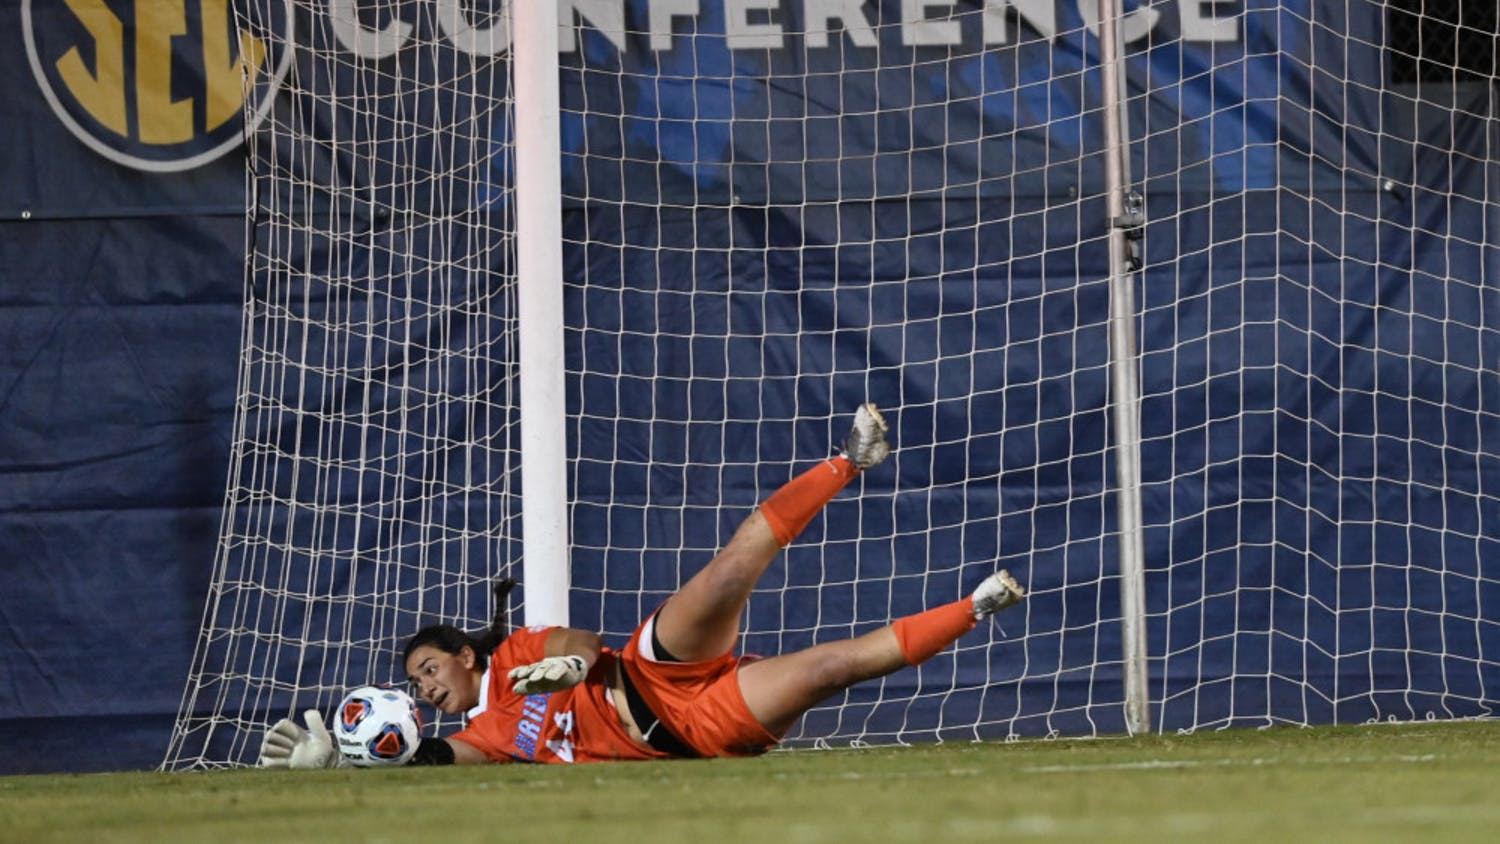 Goalkeeper Susi Espinoza dives for a save in the opening game of the SEC Tournament on Friday. After winning 6-5 in overtime on Nov. 13, the Gators tournament hopes were dashed Sunday night when they lost to Missouri.